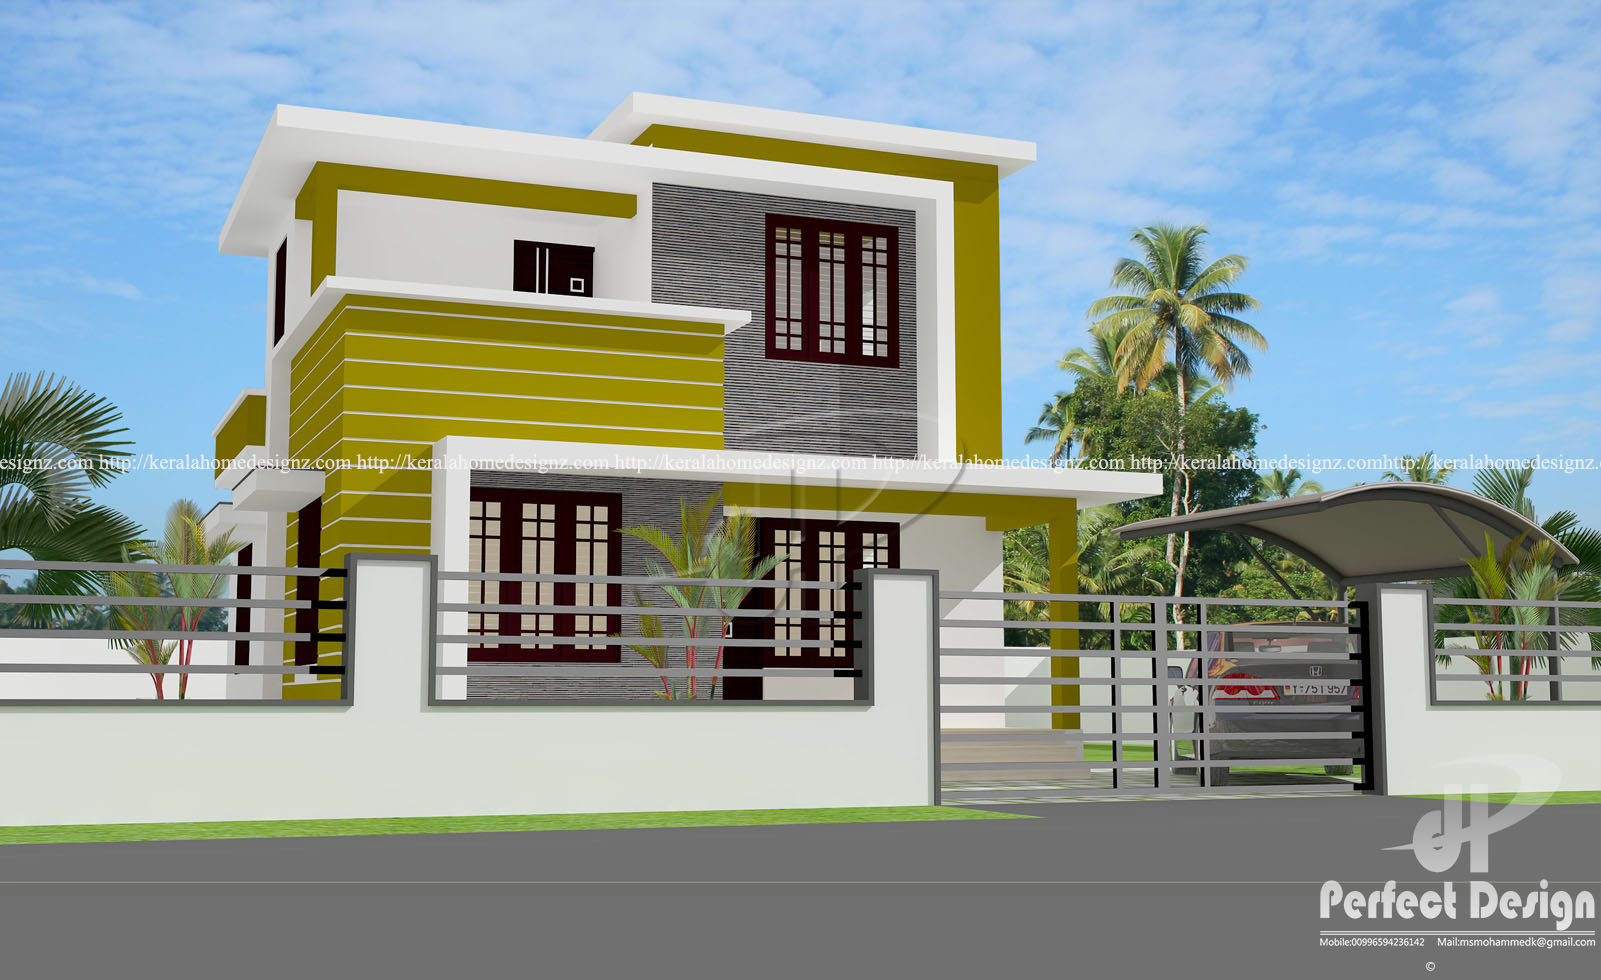 1215 sq ft double floor home design kerala home design for Kerala home designs photos in double floor